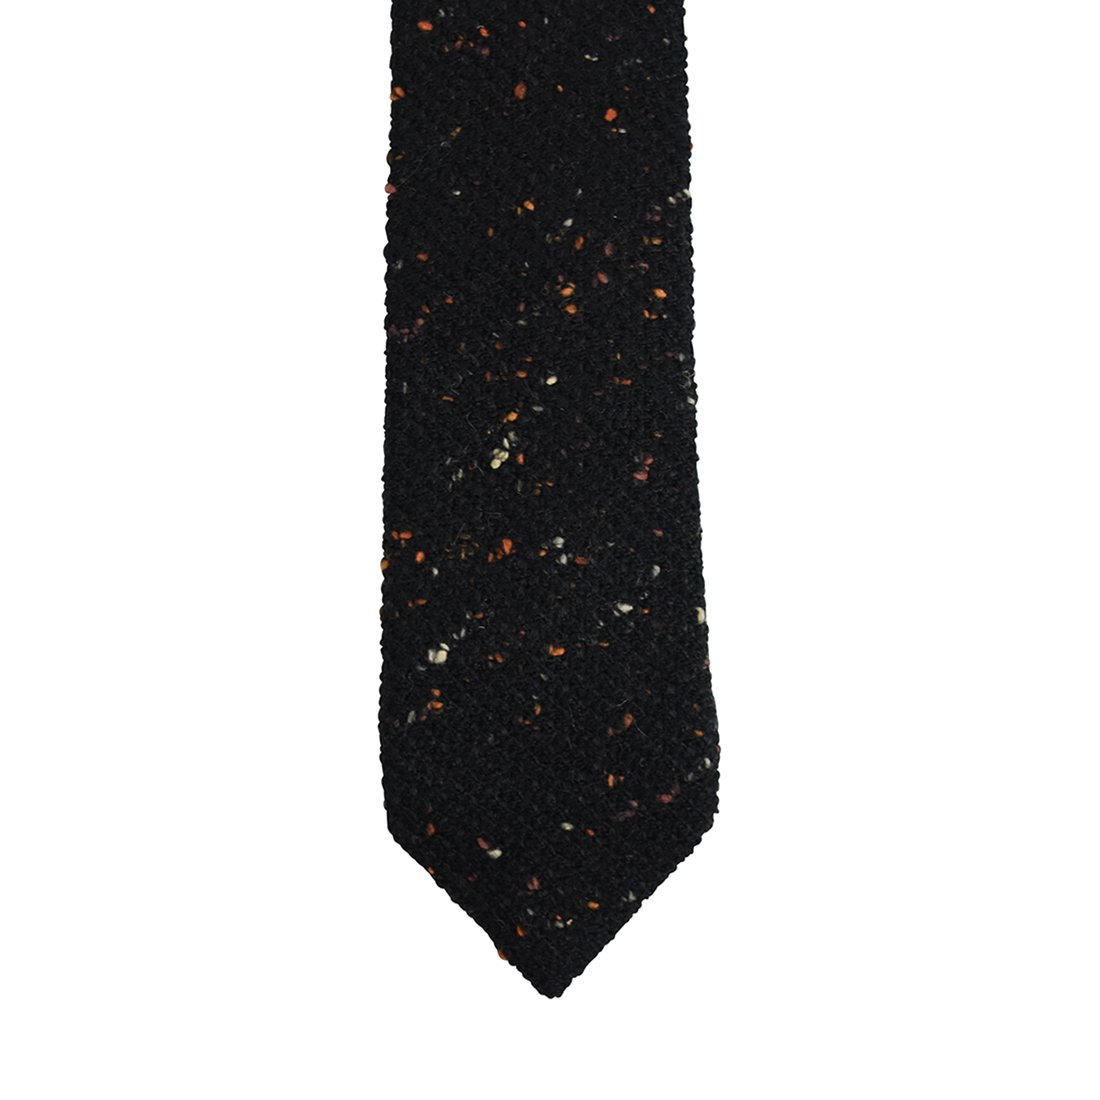 Speckled Tweed Youth Tie Young Boys Retro Tie DaCee Designs Accessories AGYT-12-red